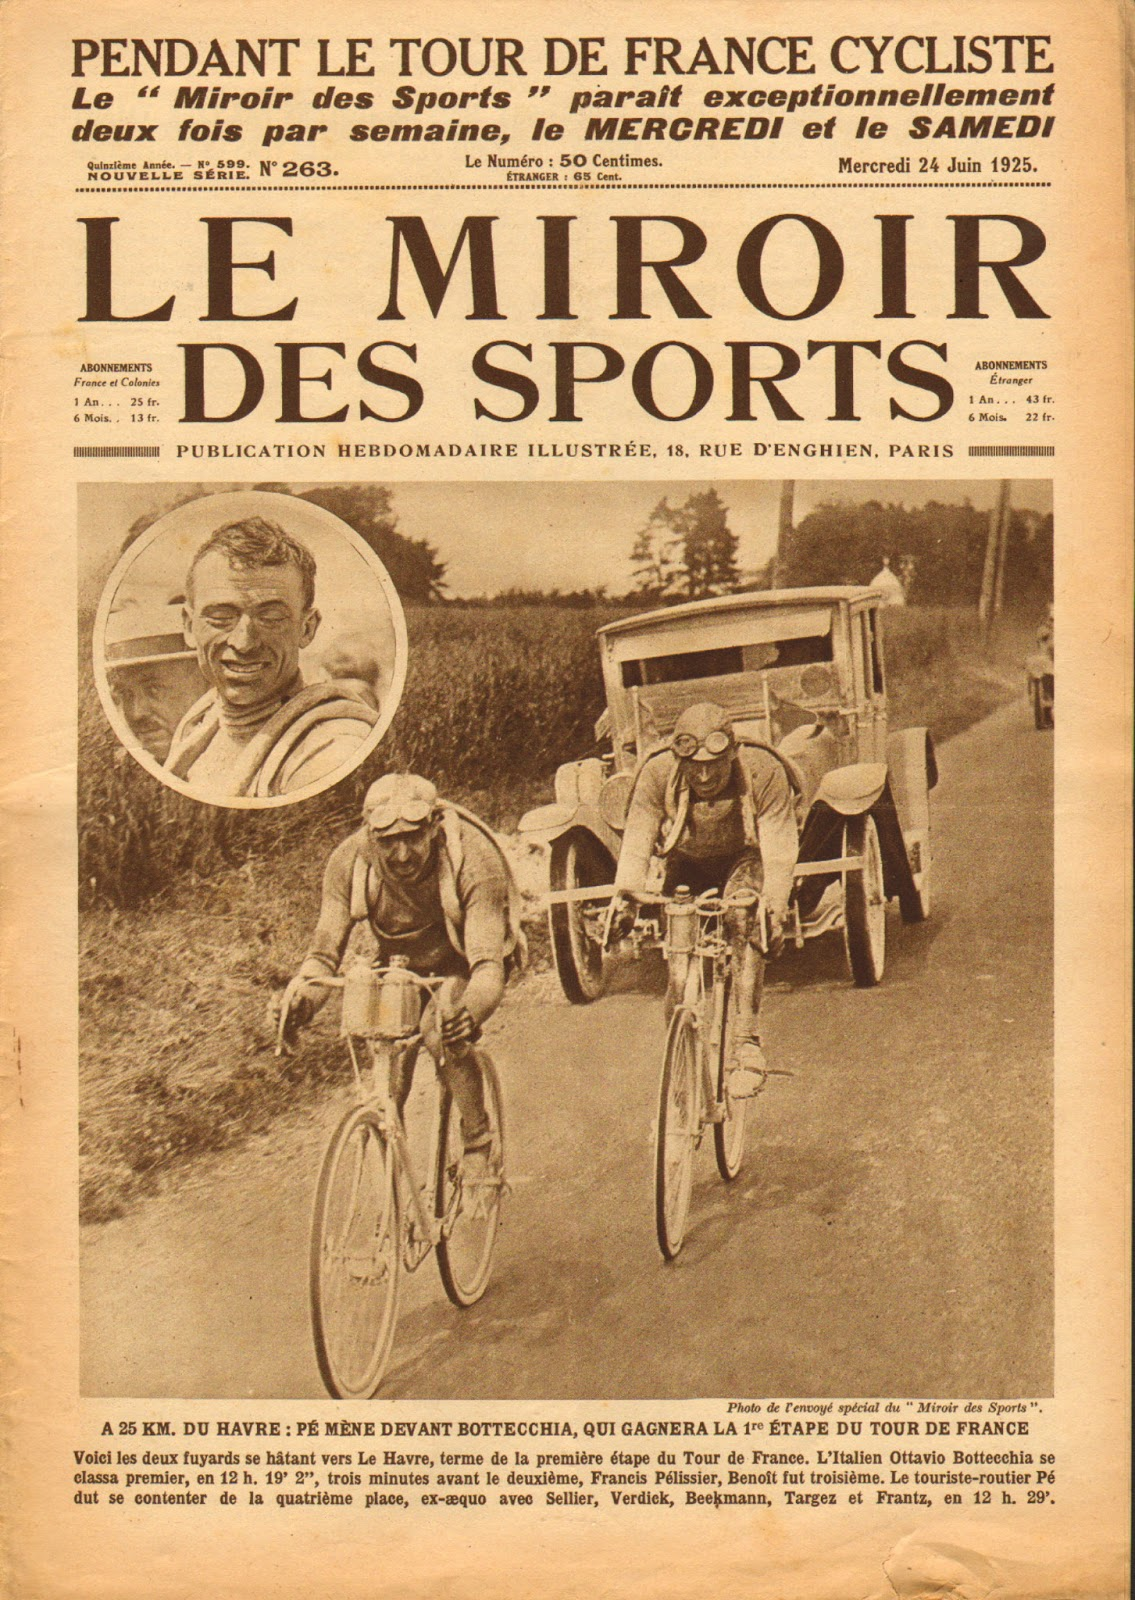 Cycling passions for Miroir des sports